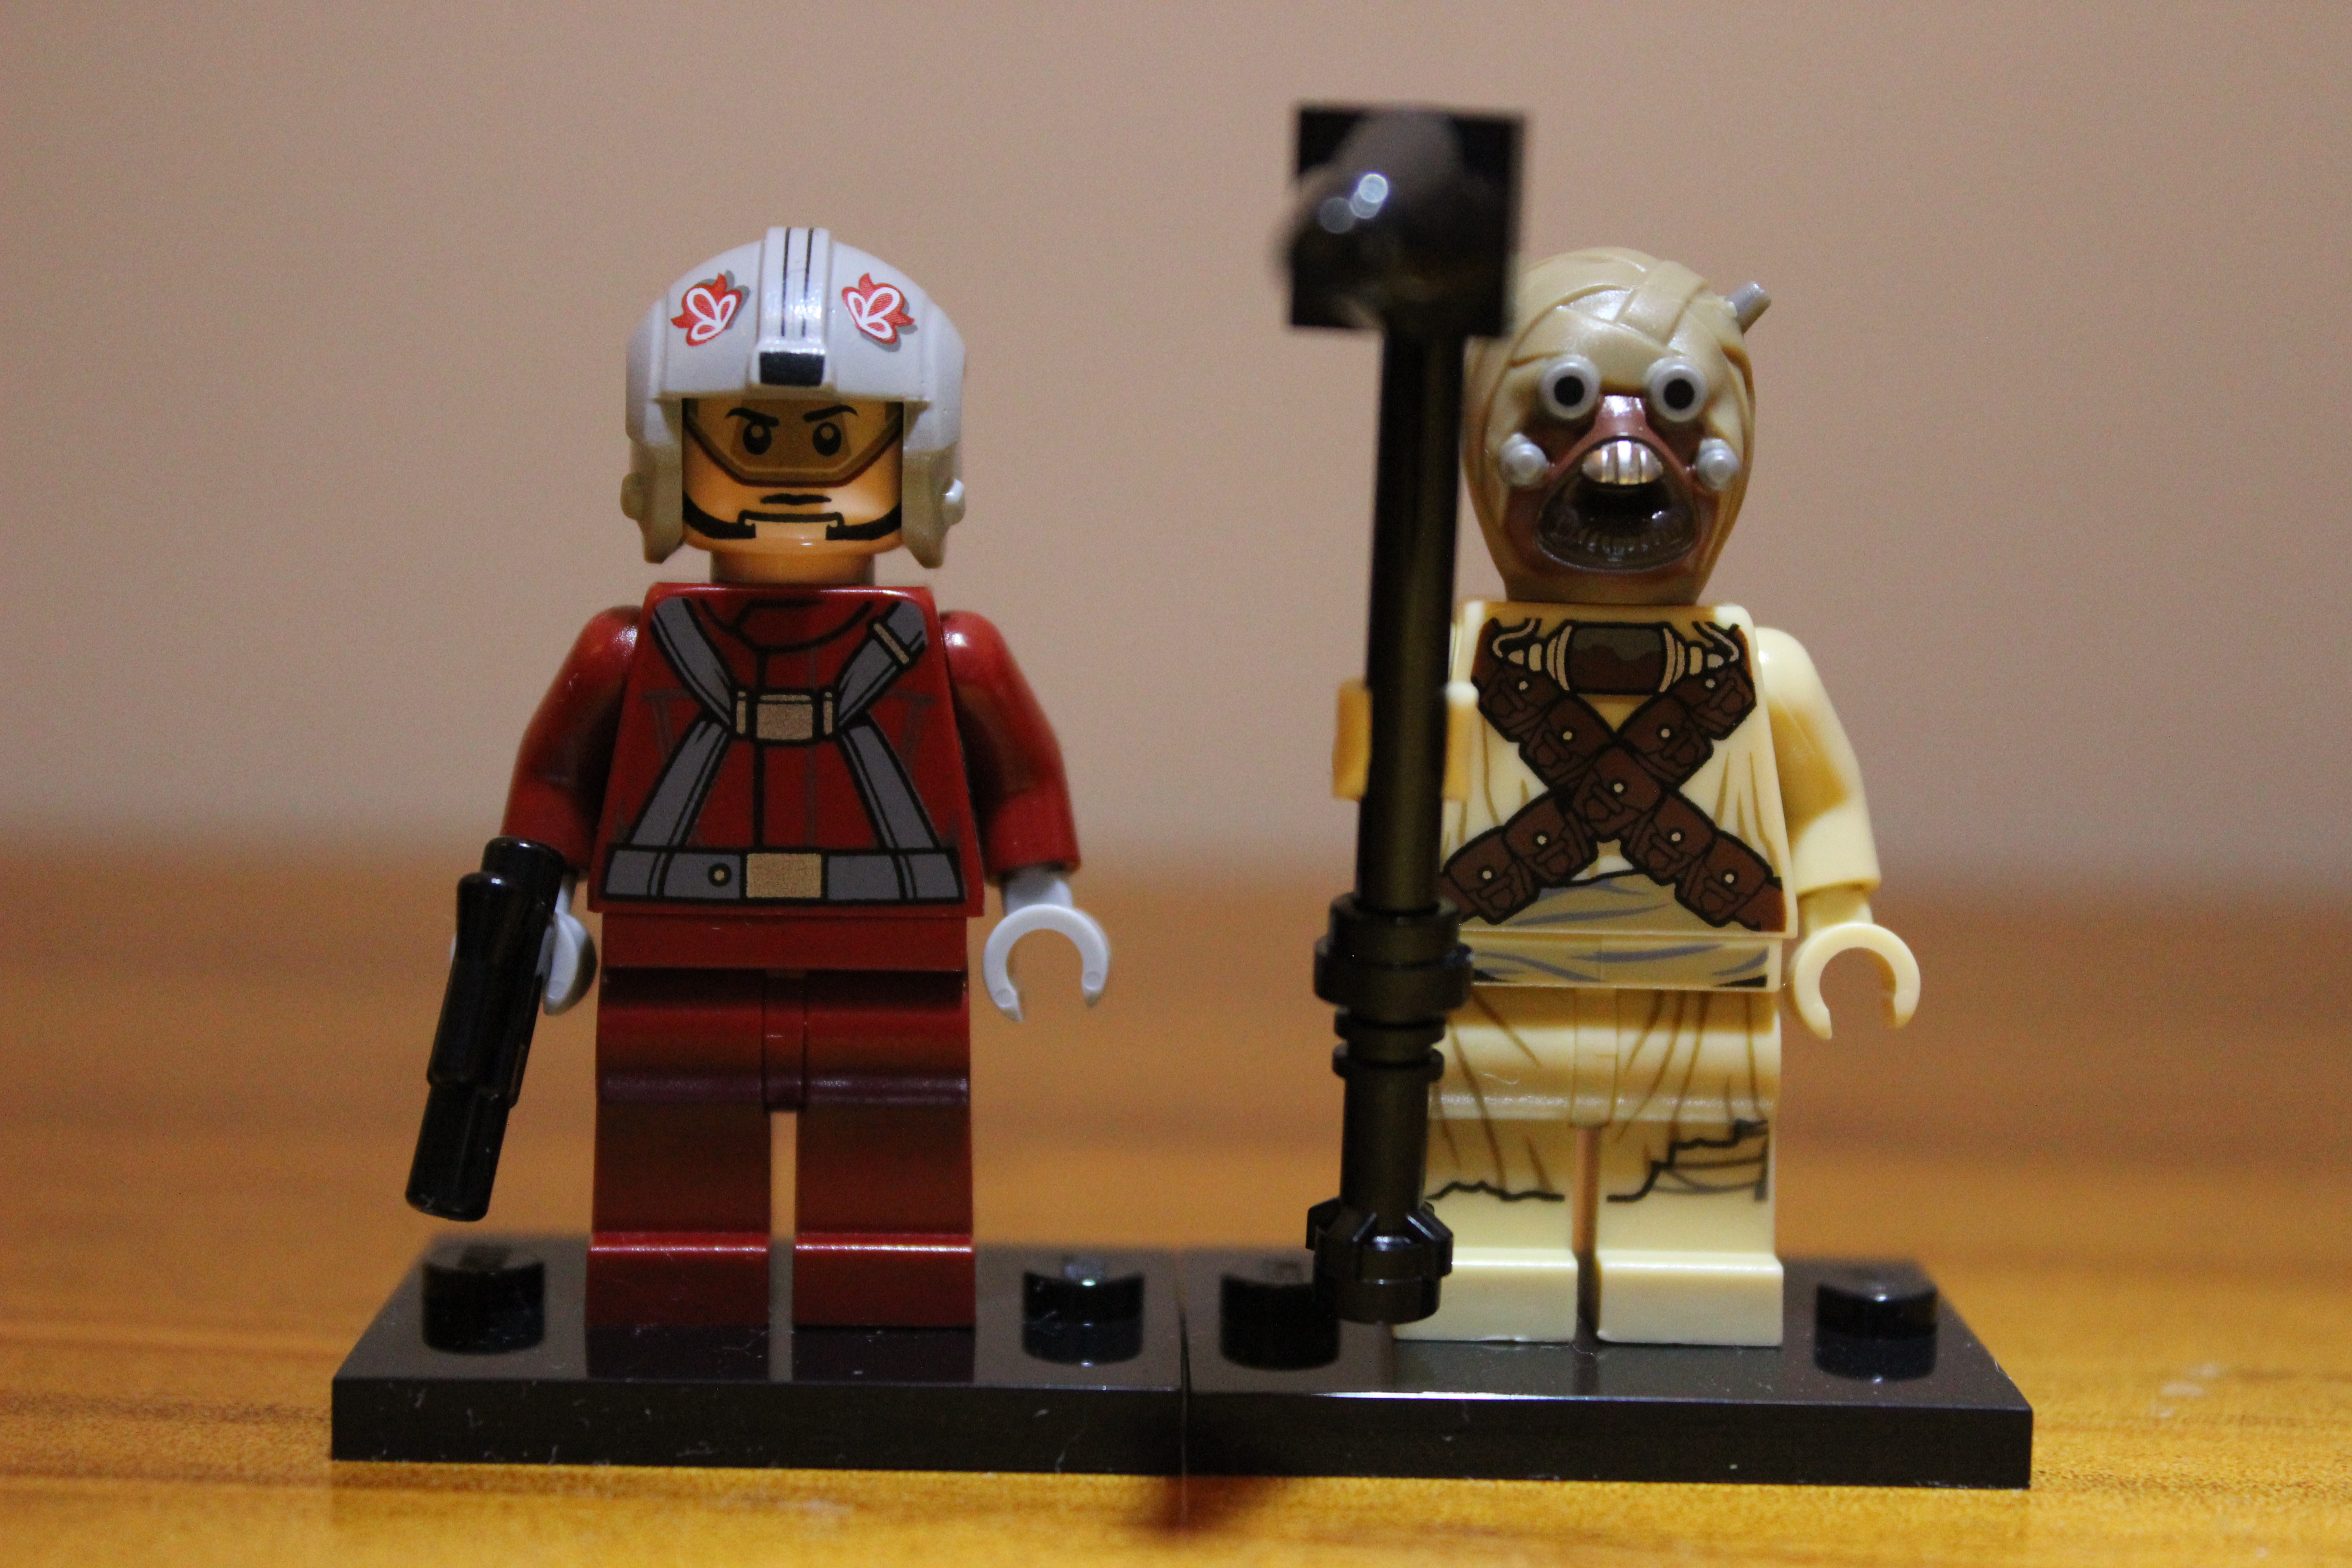 Lego Star Wars T 16 Skyhopper 75081 Review Truthfulnerd I may have definitely spent $25 on a lego set just so i could get a tusken raider and a womp rat. truthfulnerd wordpress com